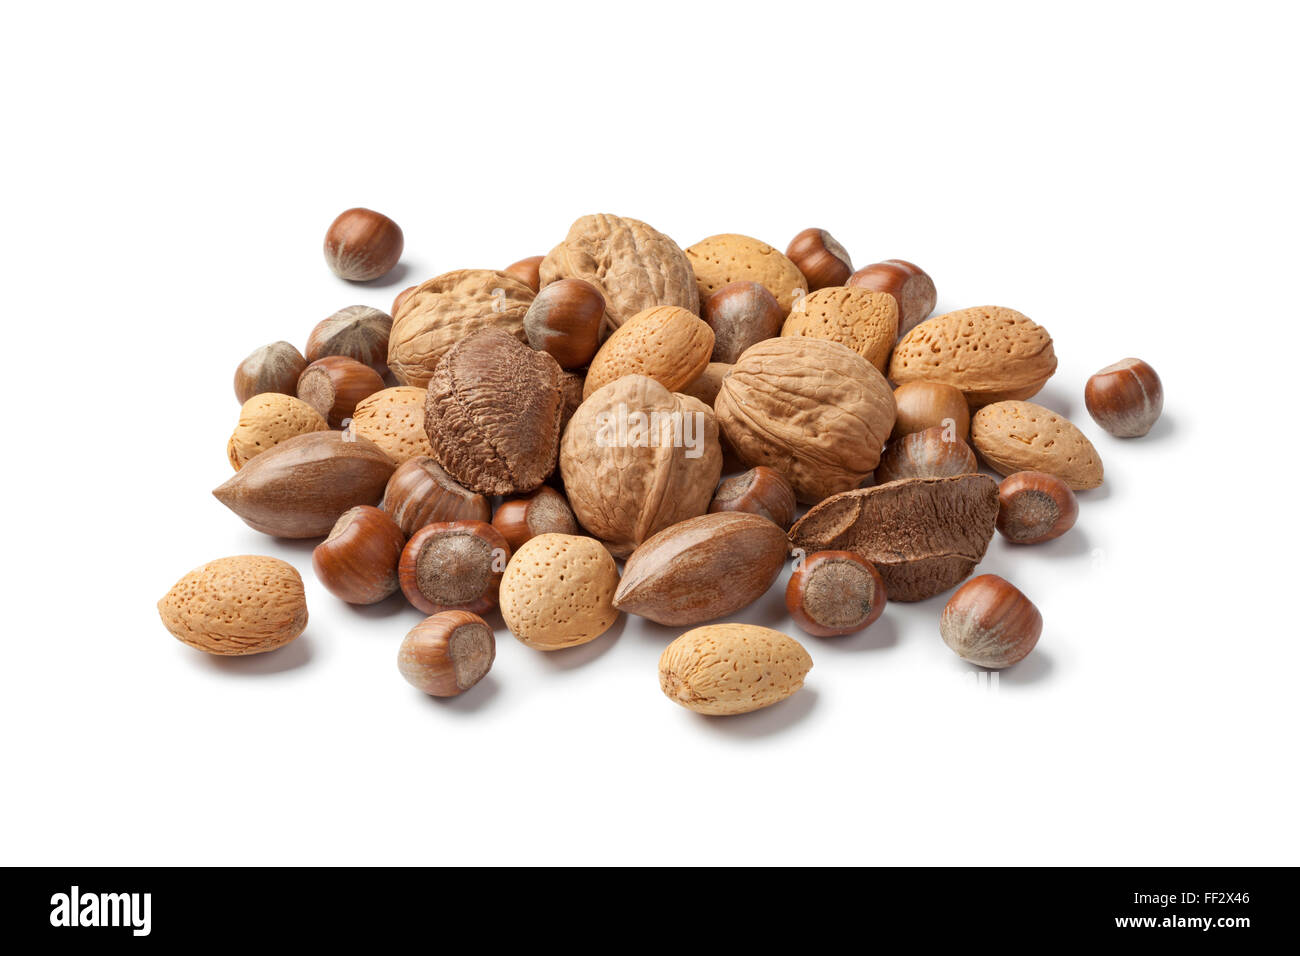 Heap of mixed nuts in the shell on white background - Stock Image